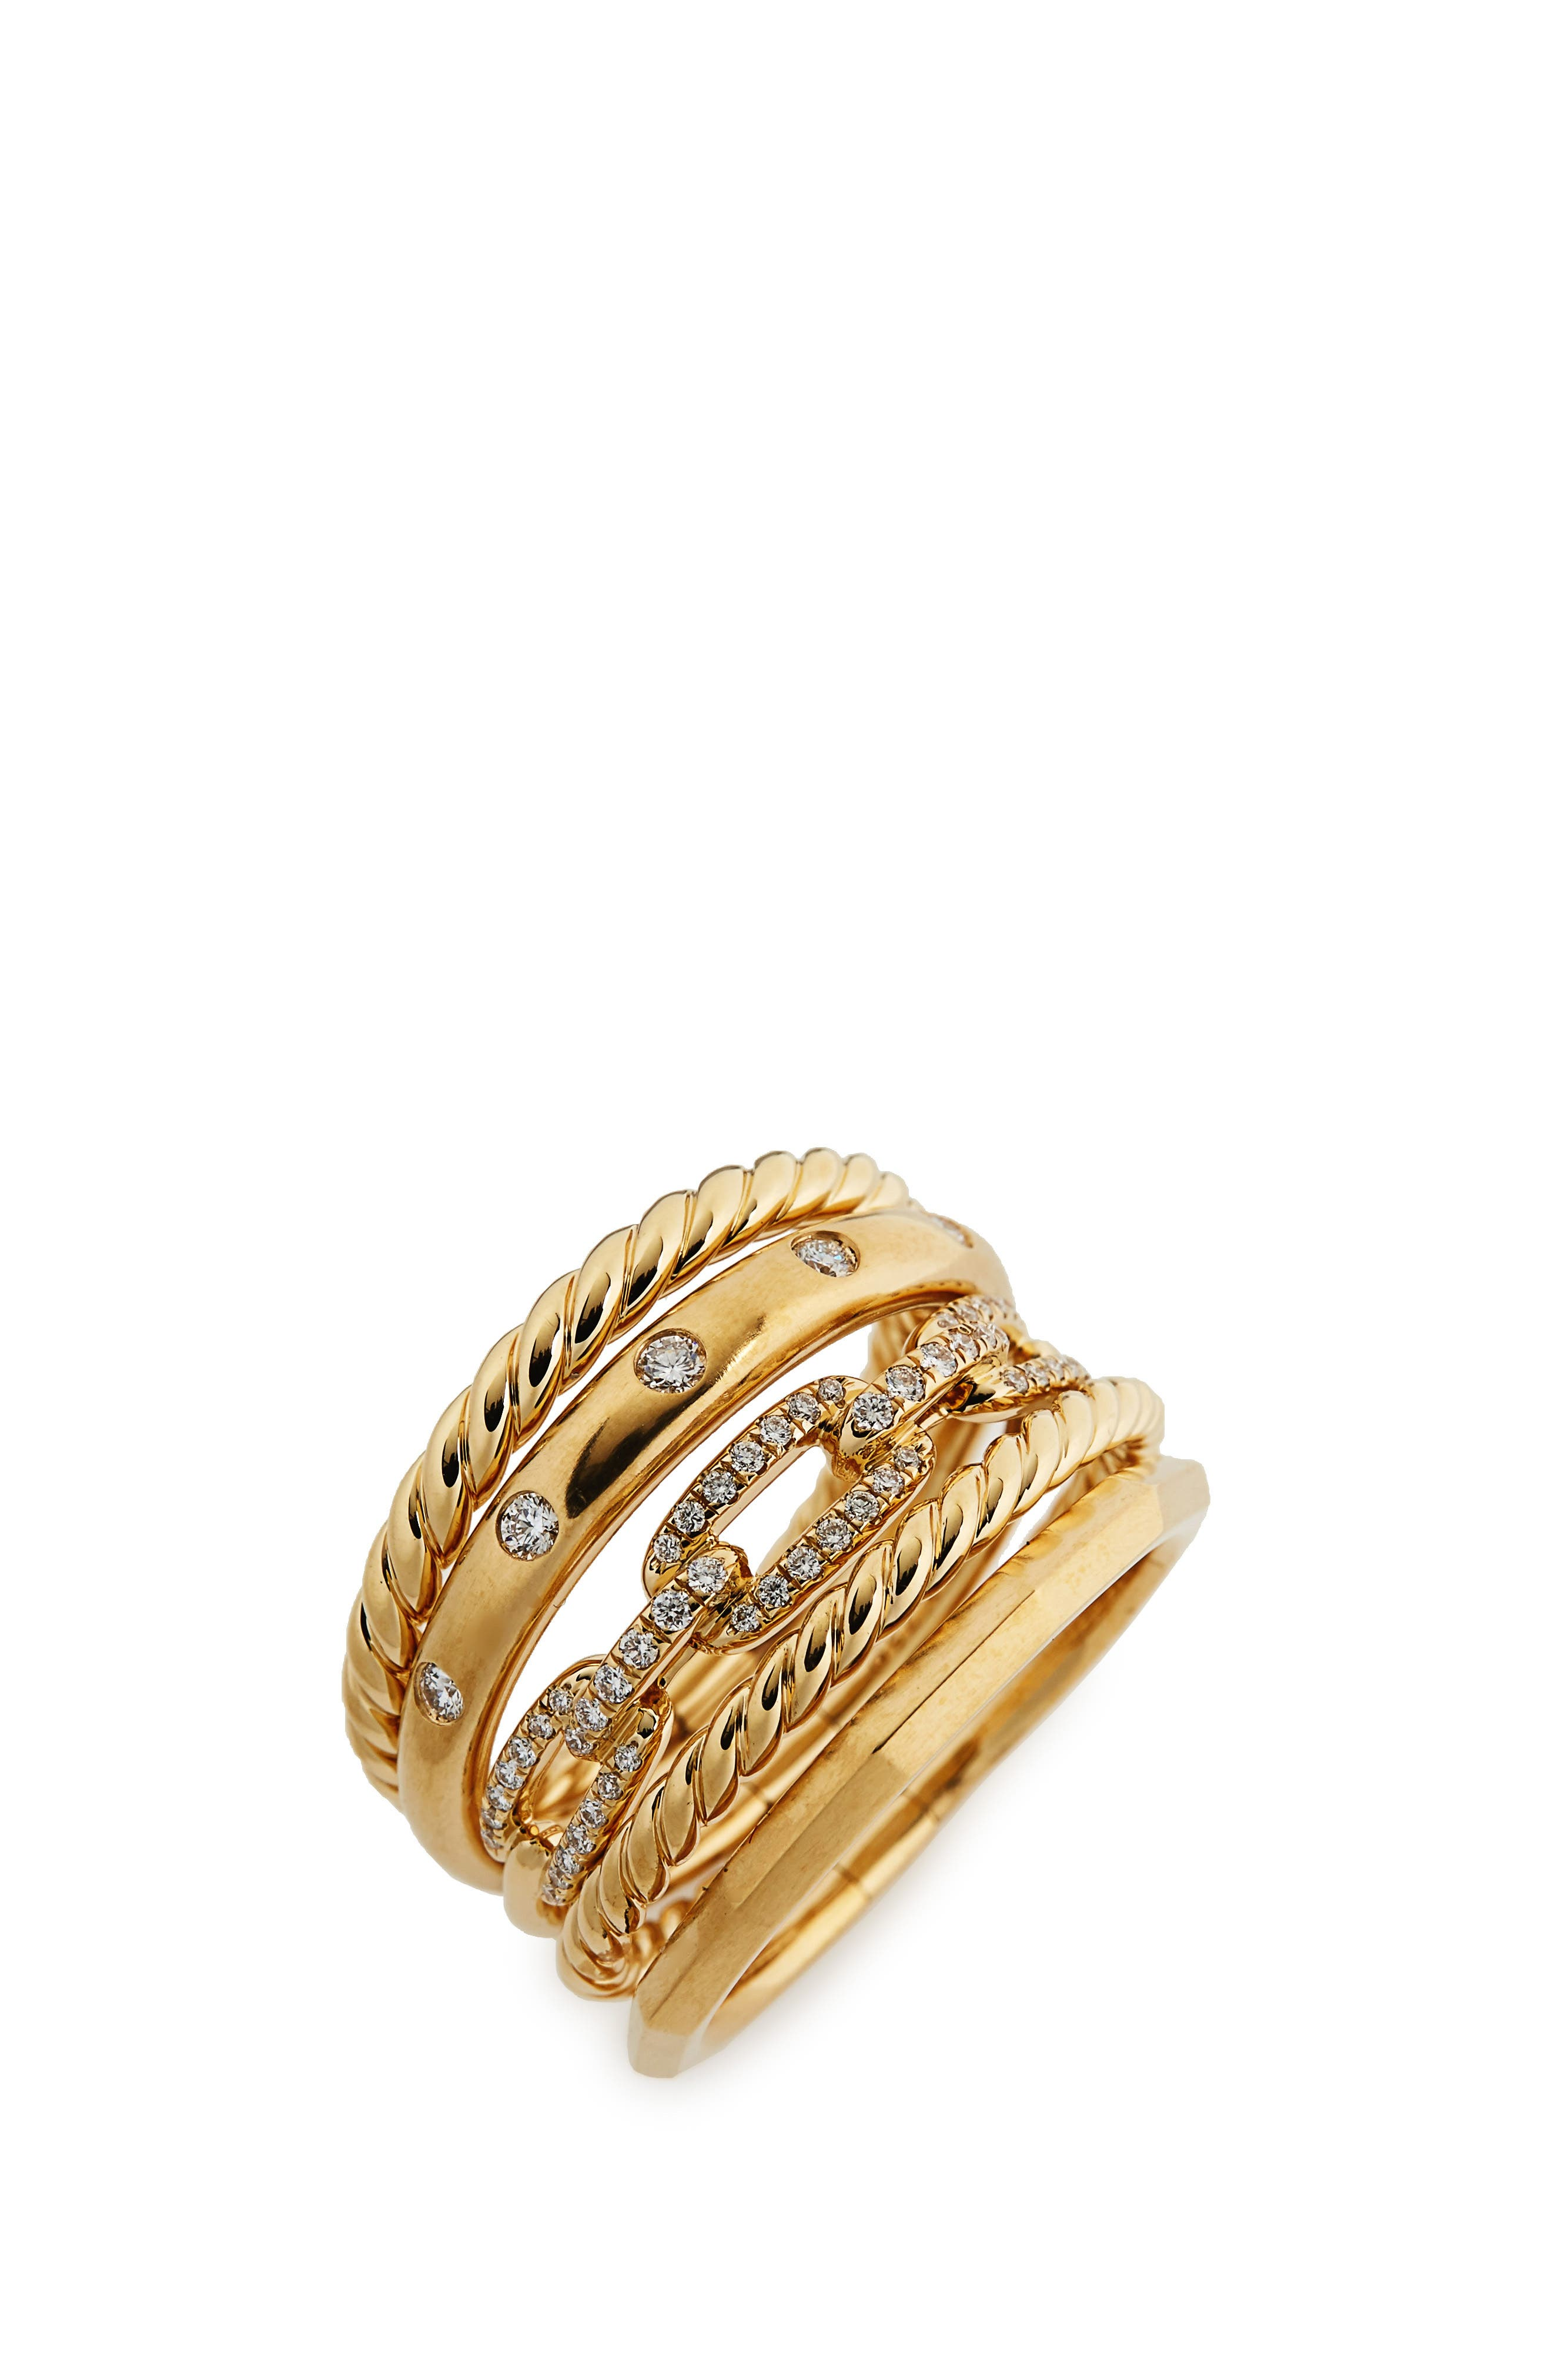 Alternate Image 1 Selected - David Yurman Stax Wide Ring with Diamonds in 18K Gold, 15mm